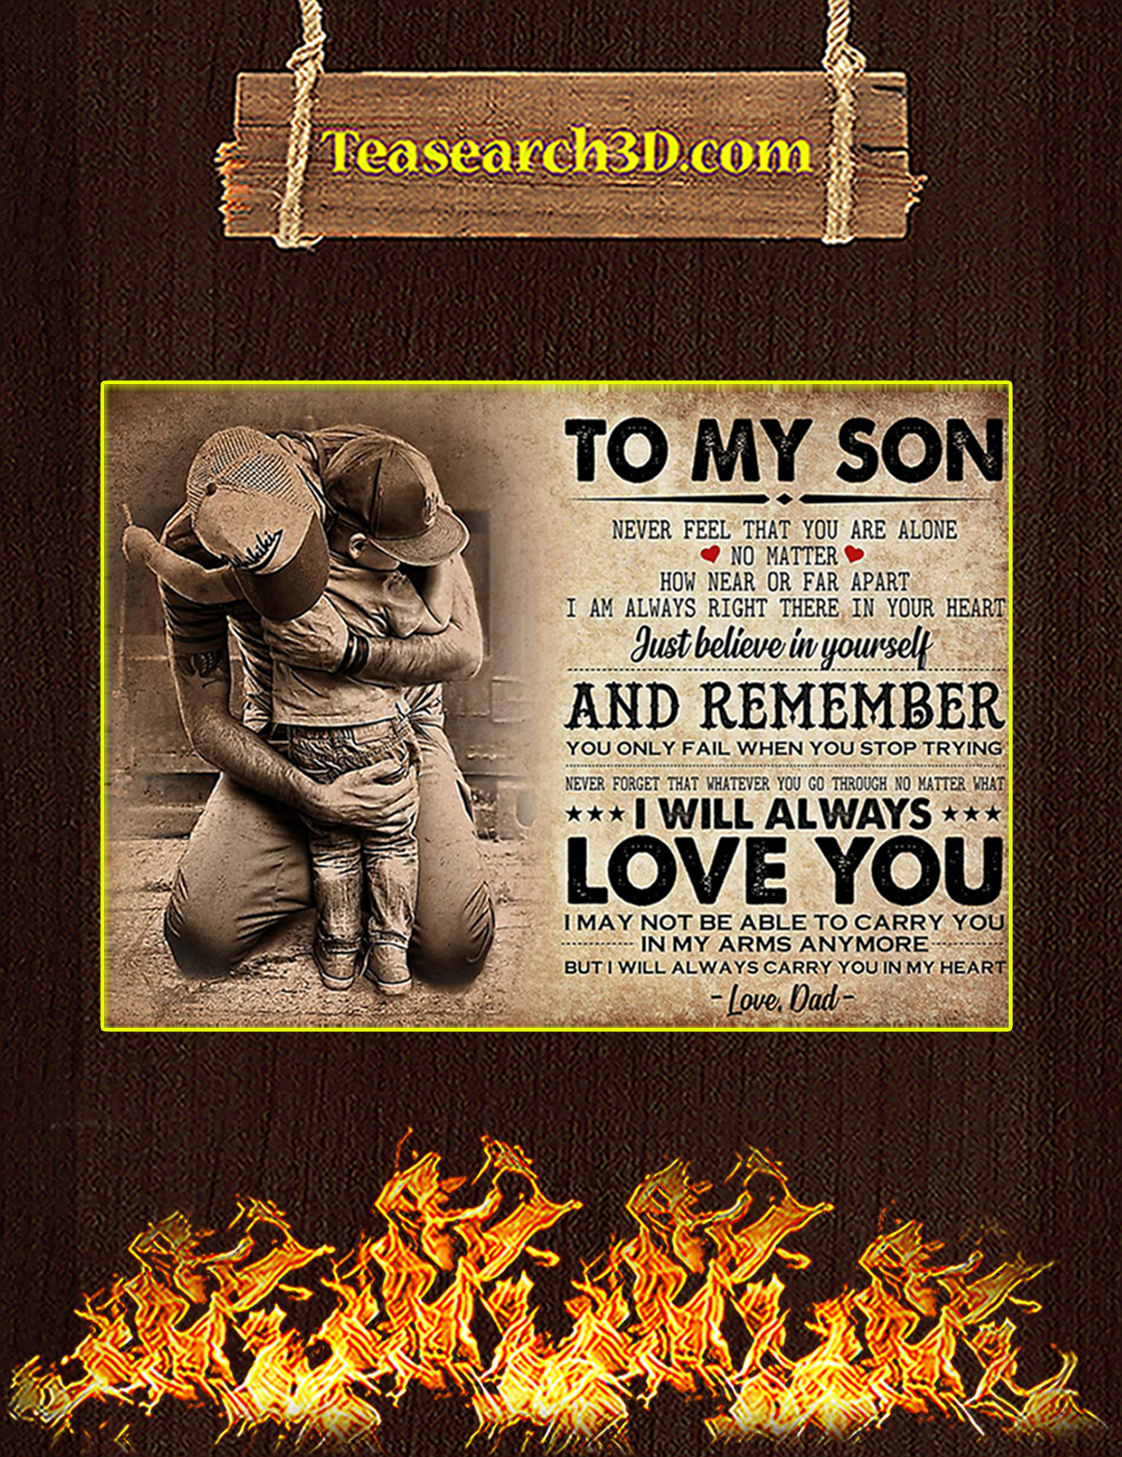 To my son dad never feel that you alone poster A3